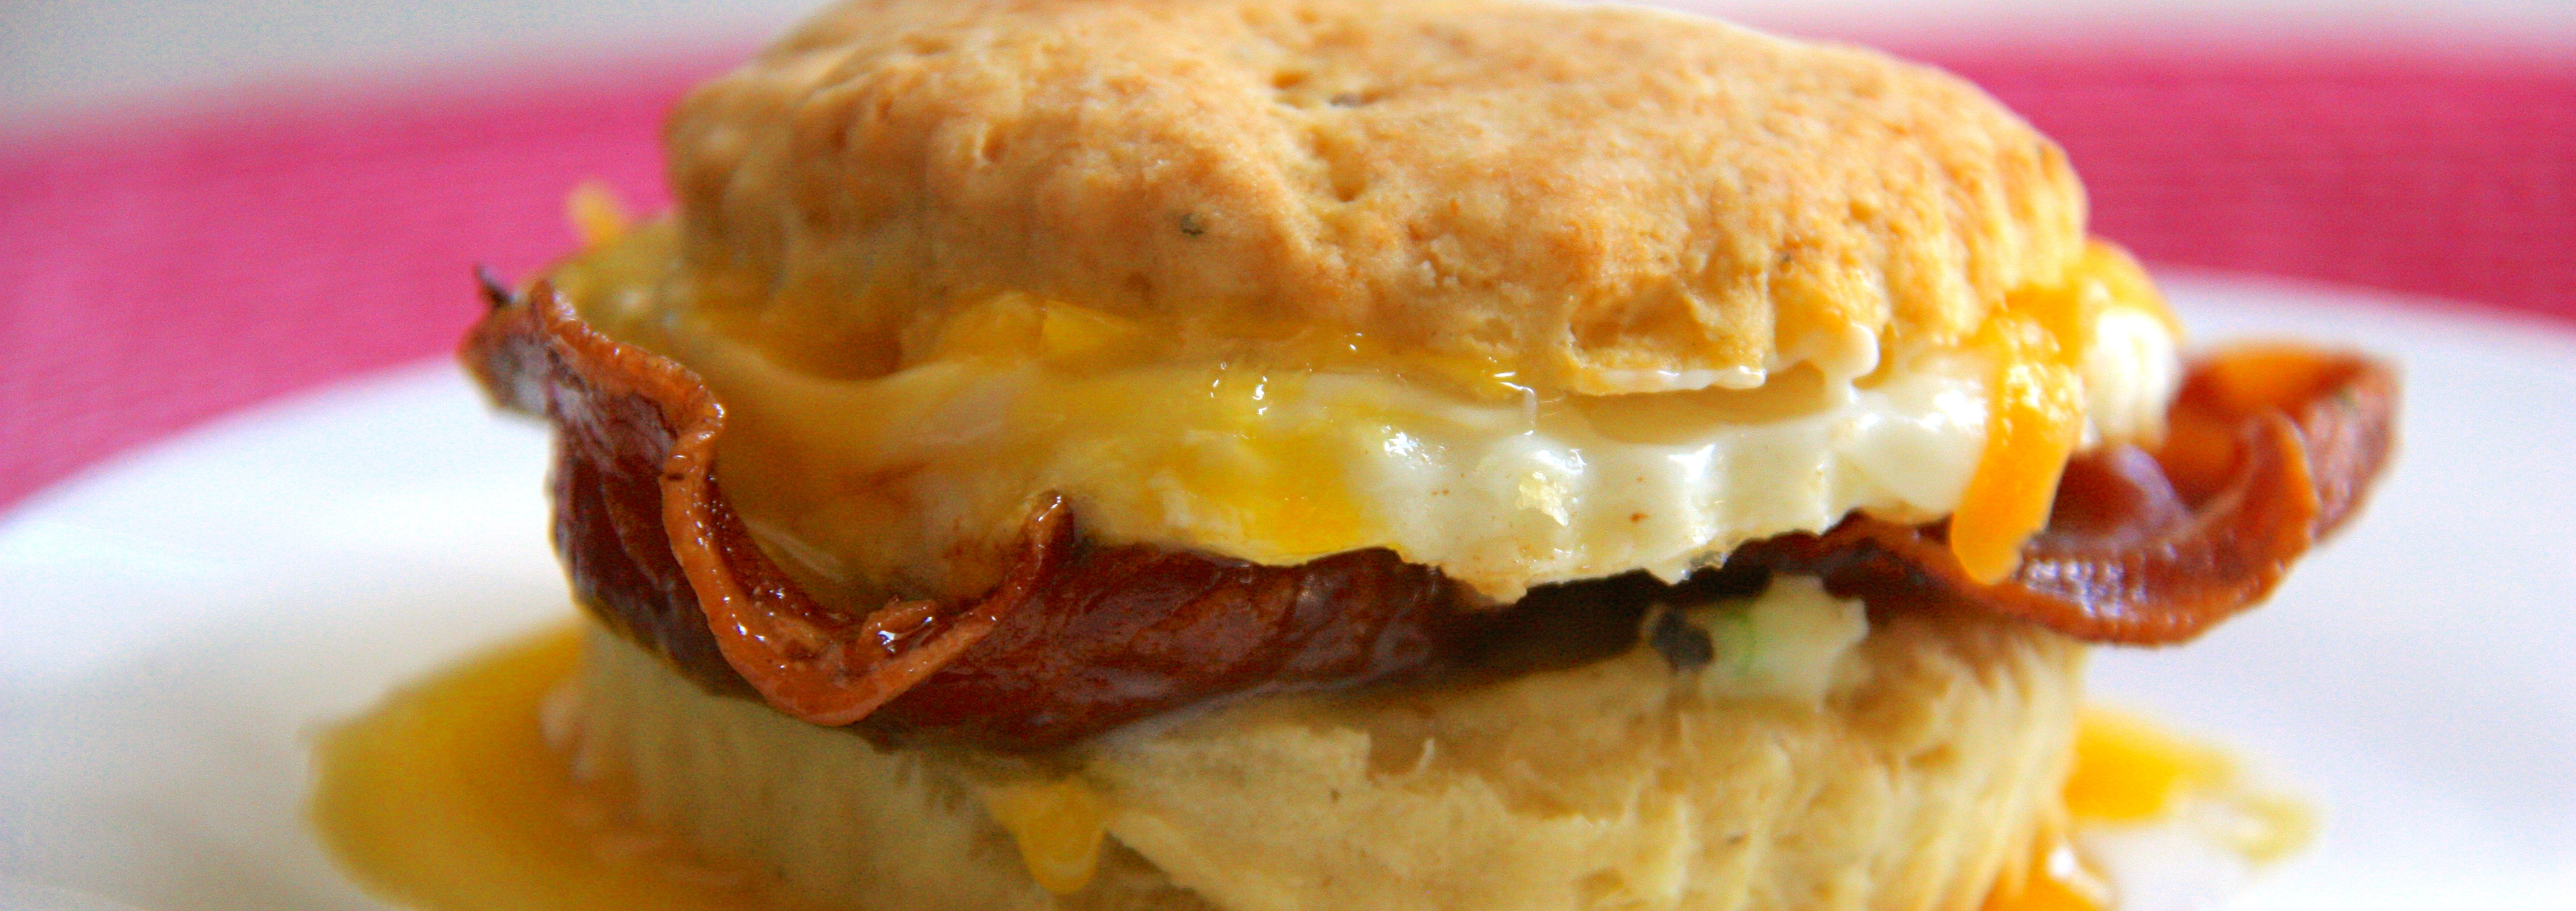 The Garlic Pad Breakfast Sandwich